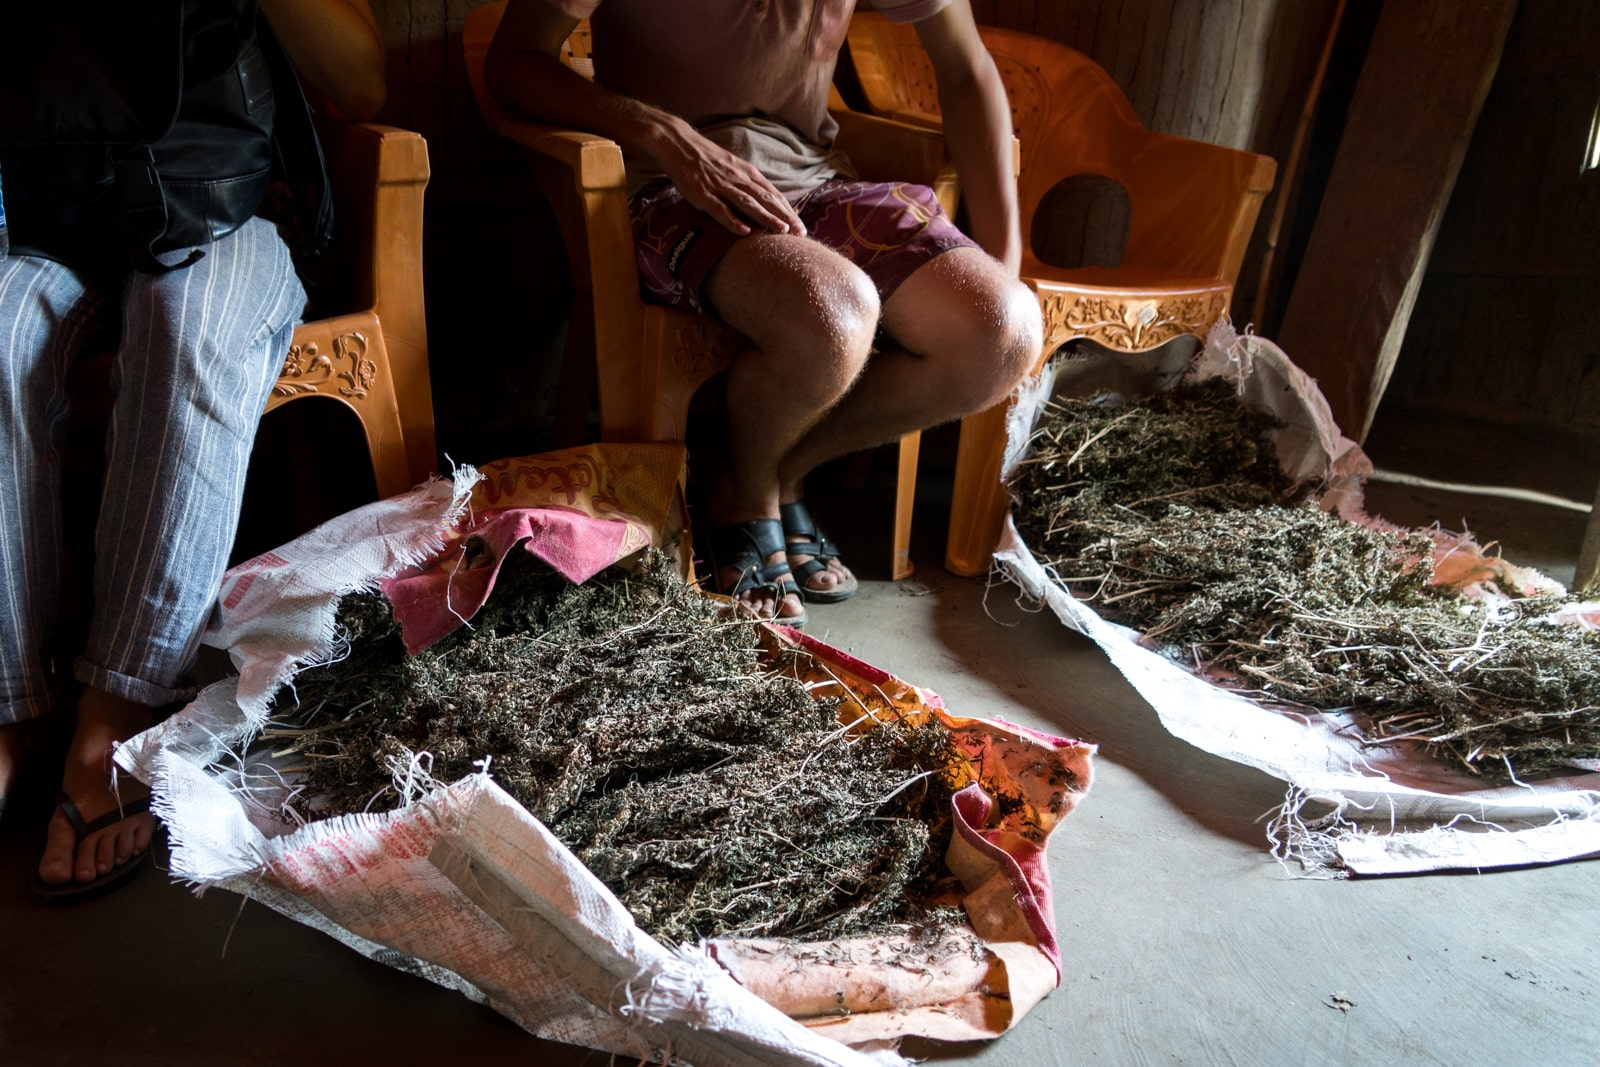 Guide to smoking weed in India - Piles of wild weed in Majuli island, Assam - Lost With Purpose travel blog